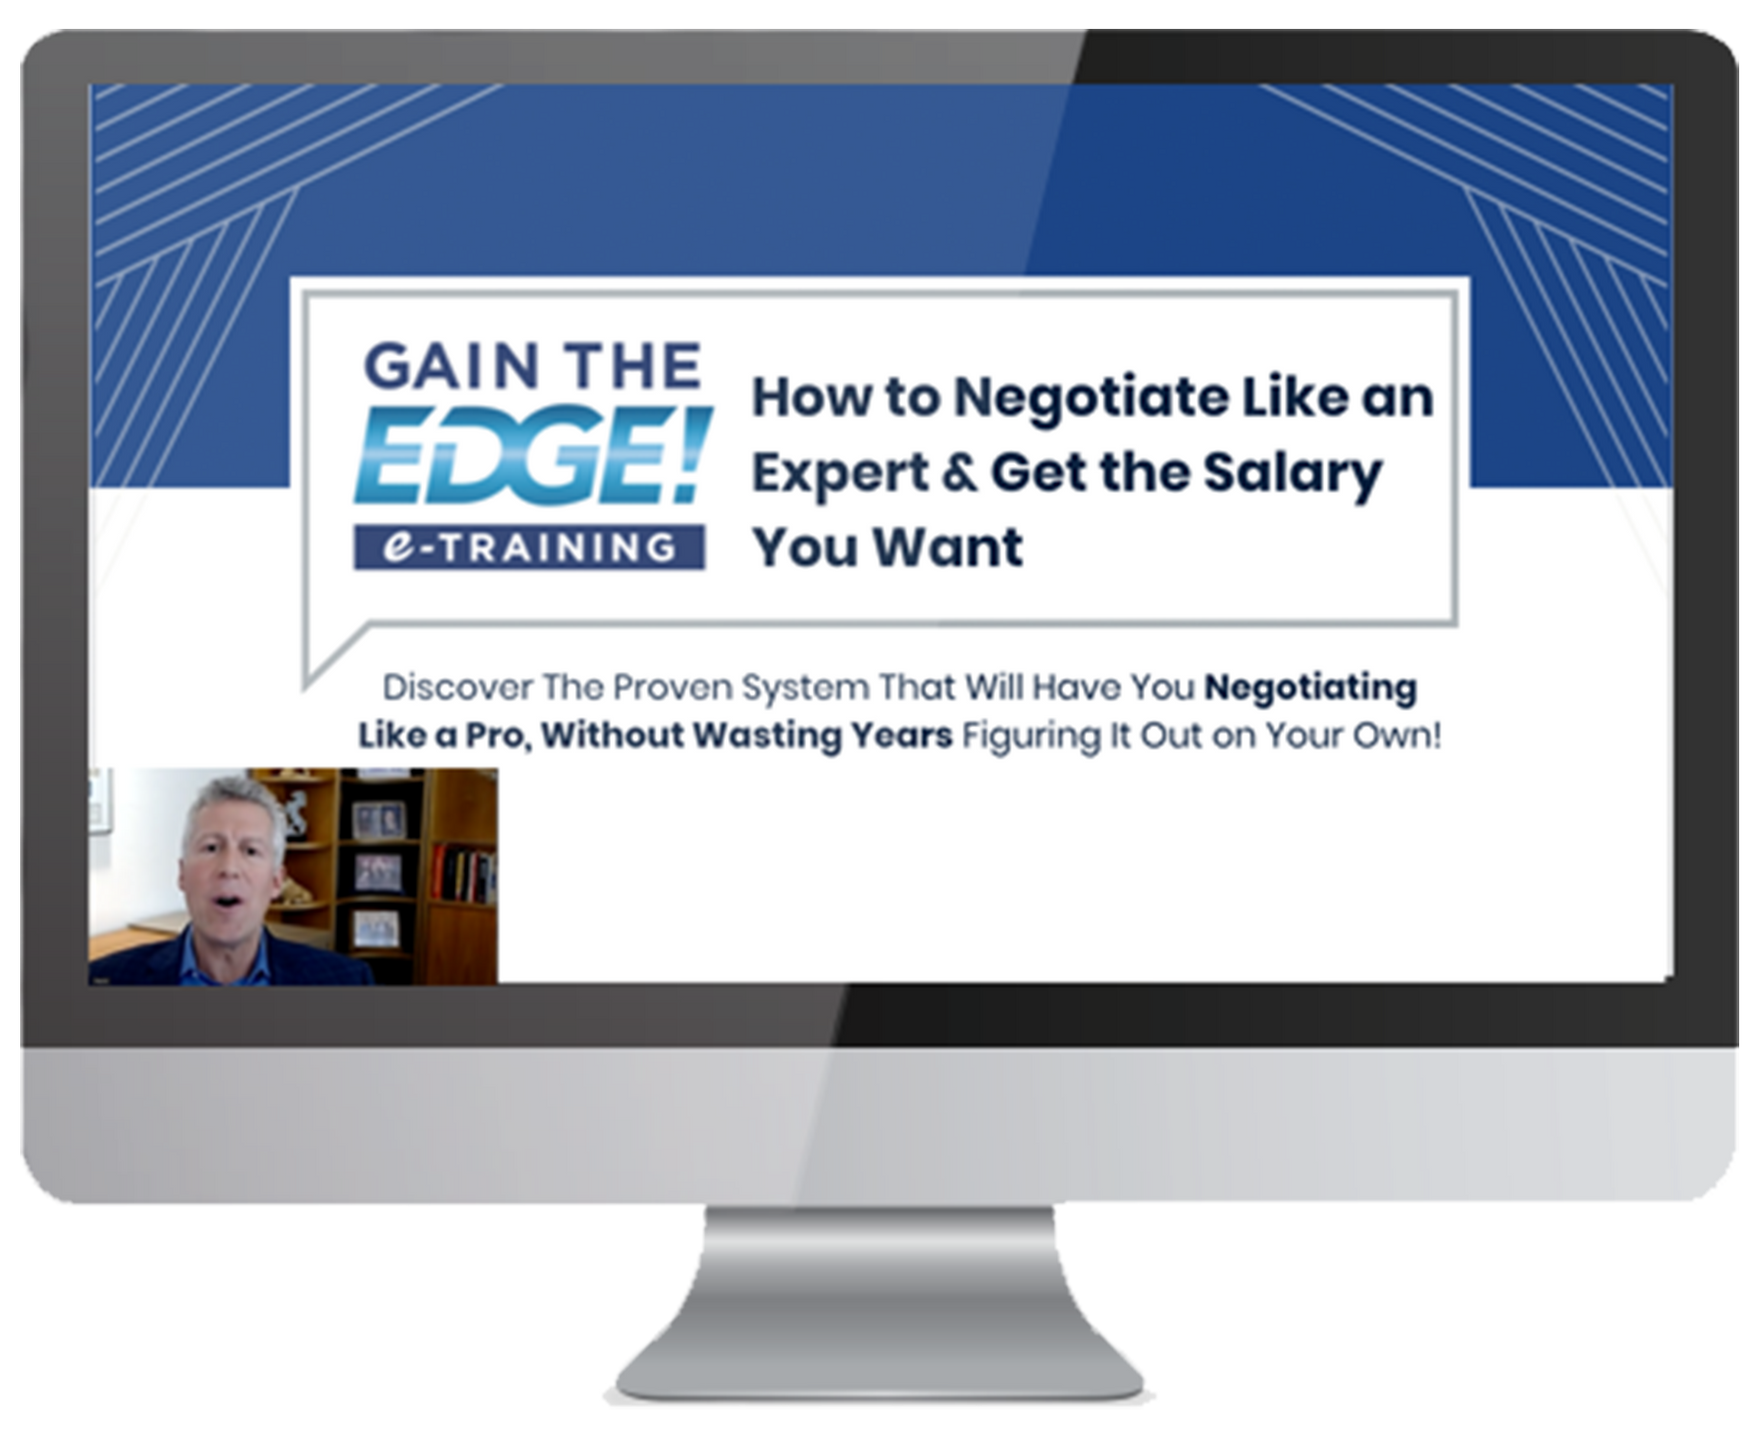 How to Negotiate Like an Expert & Get the Salary You Want Online Training